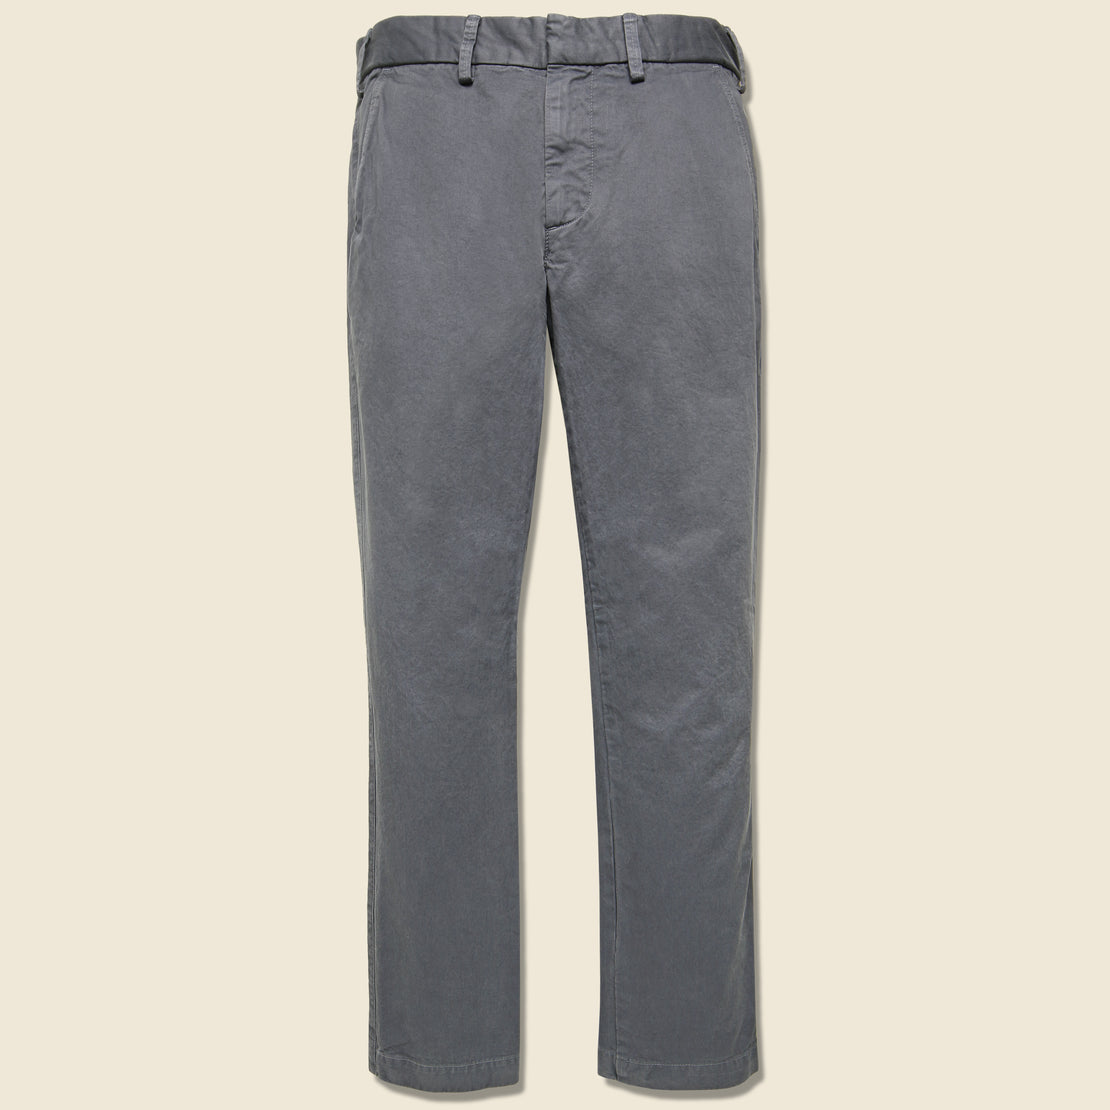 Save Khaki Bulldog Twill Trouser - Metal